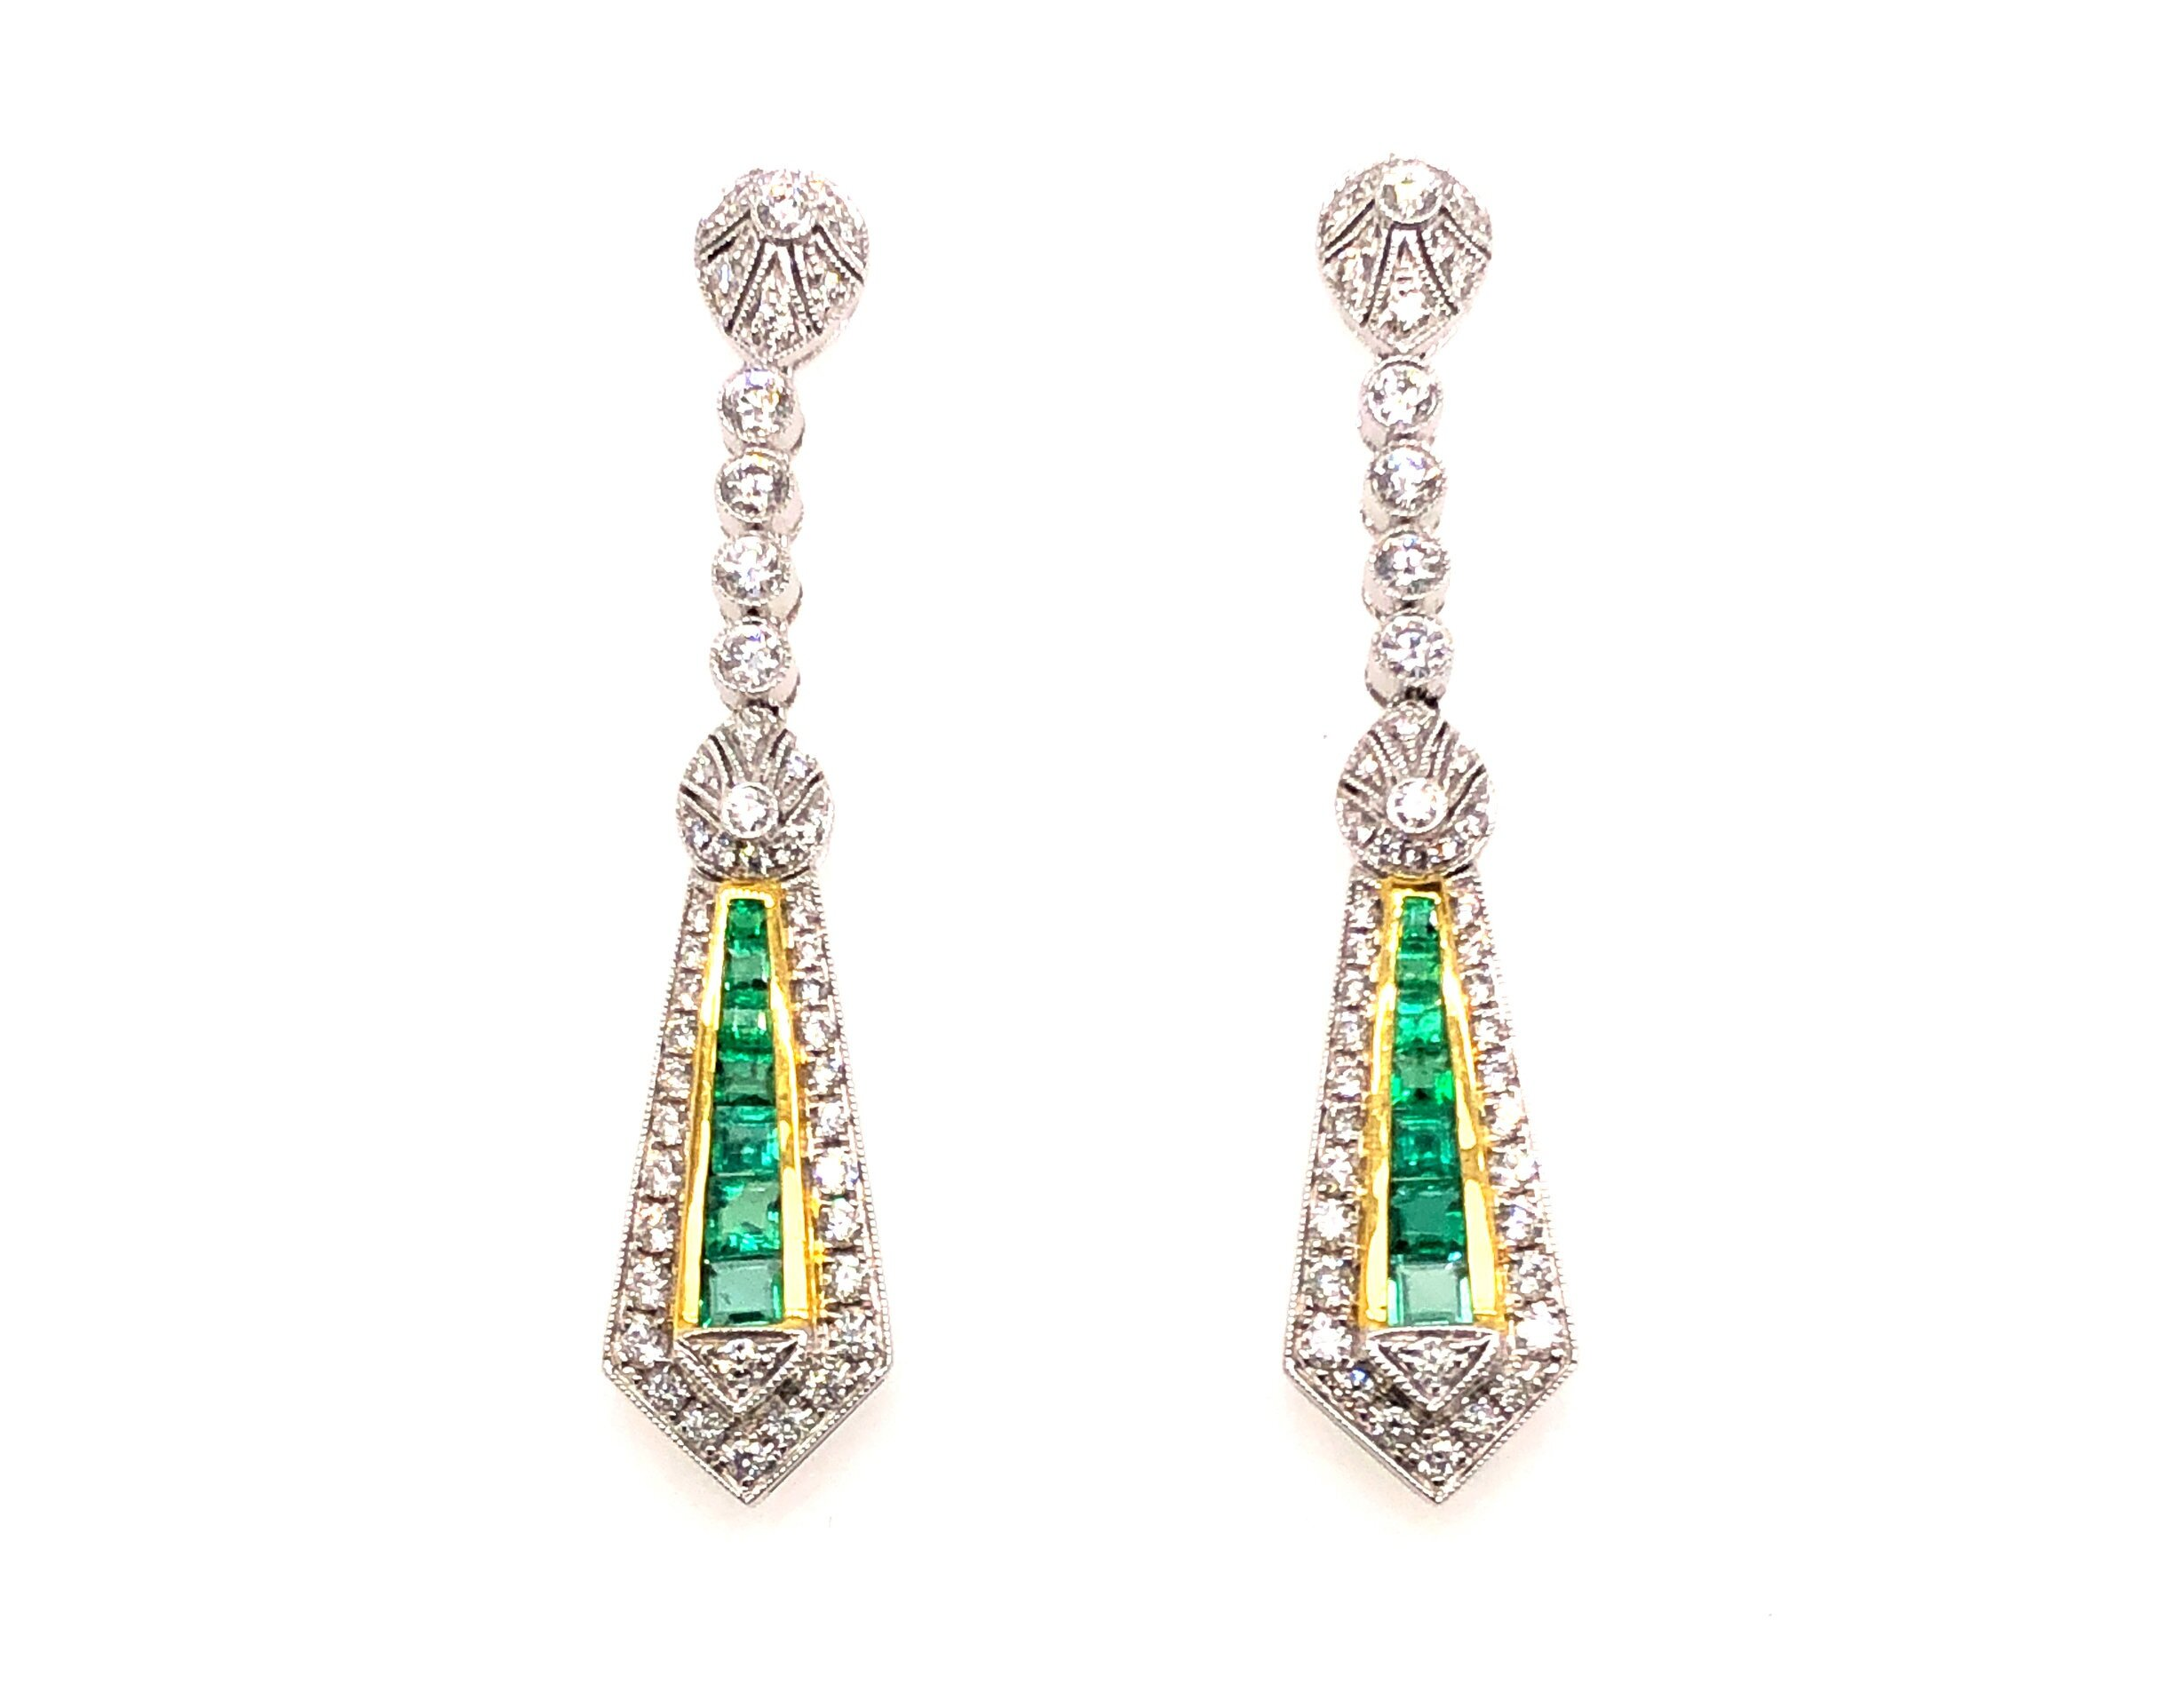 Diamond Earrings with Emeralds set, 18kt White Gold, 18kt Yellow Gold  Est. US$ 2,500-3,500